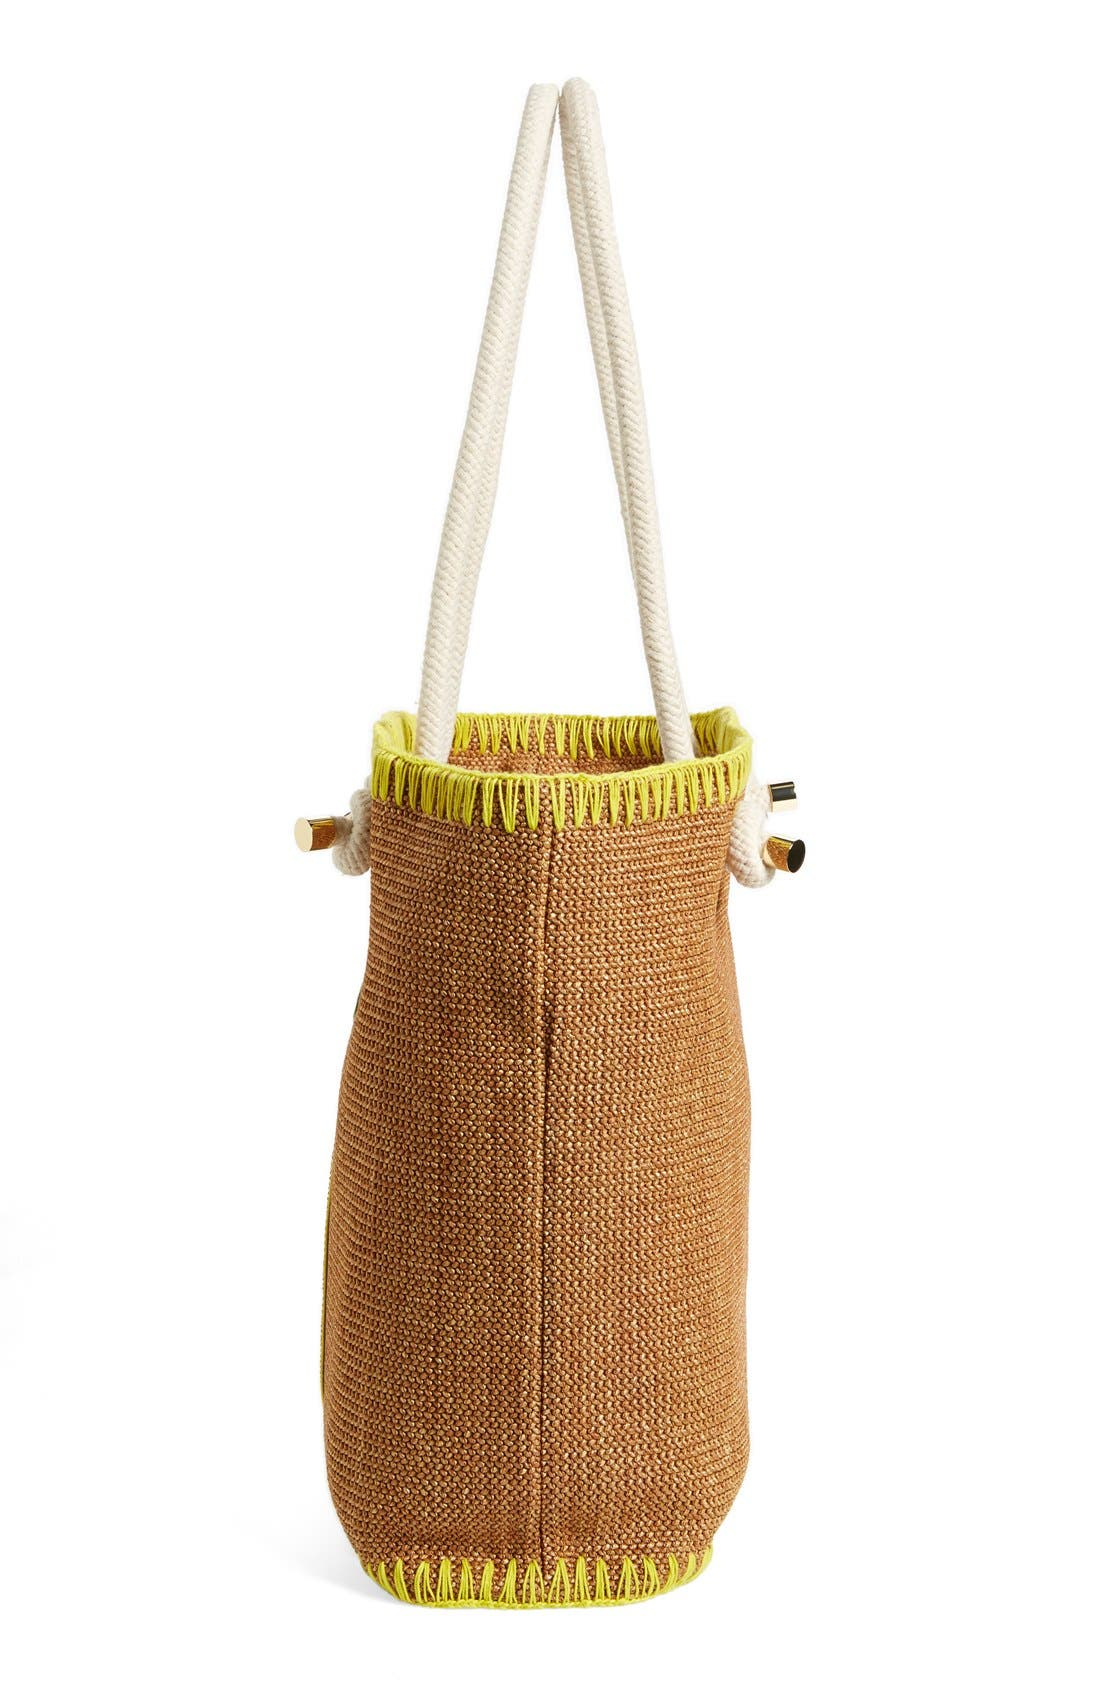 TORY BURCH, 'Pineapple' Woven Tote, Alternate thumbnail 5, color, 200